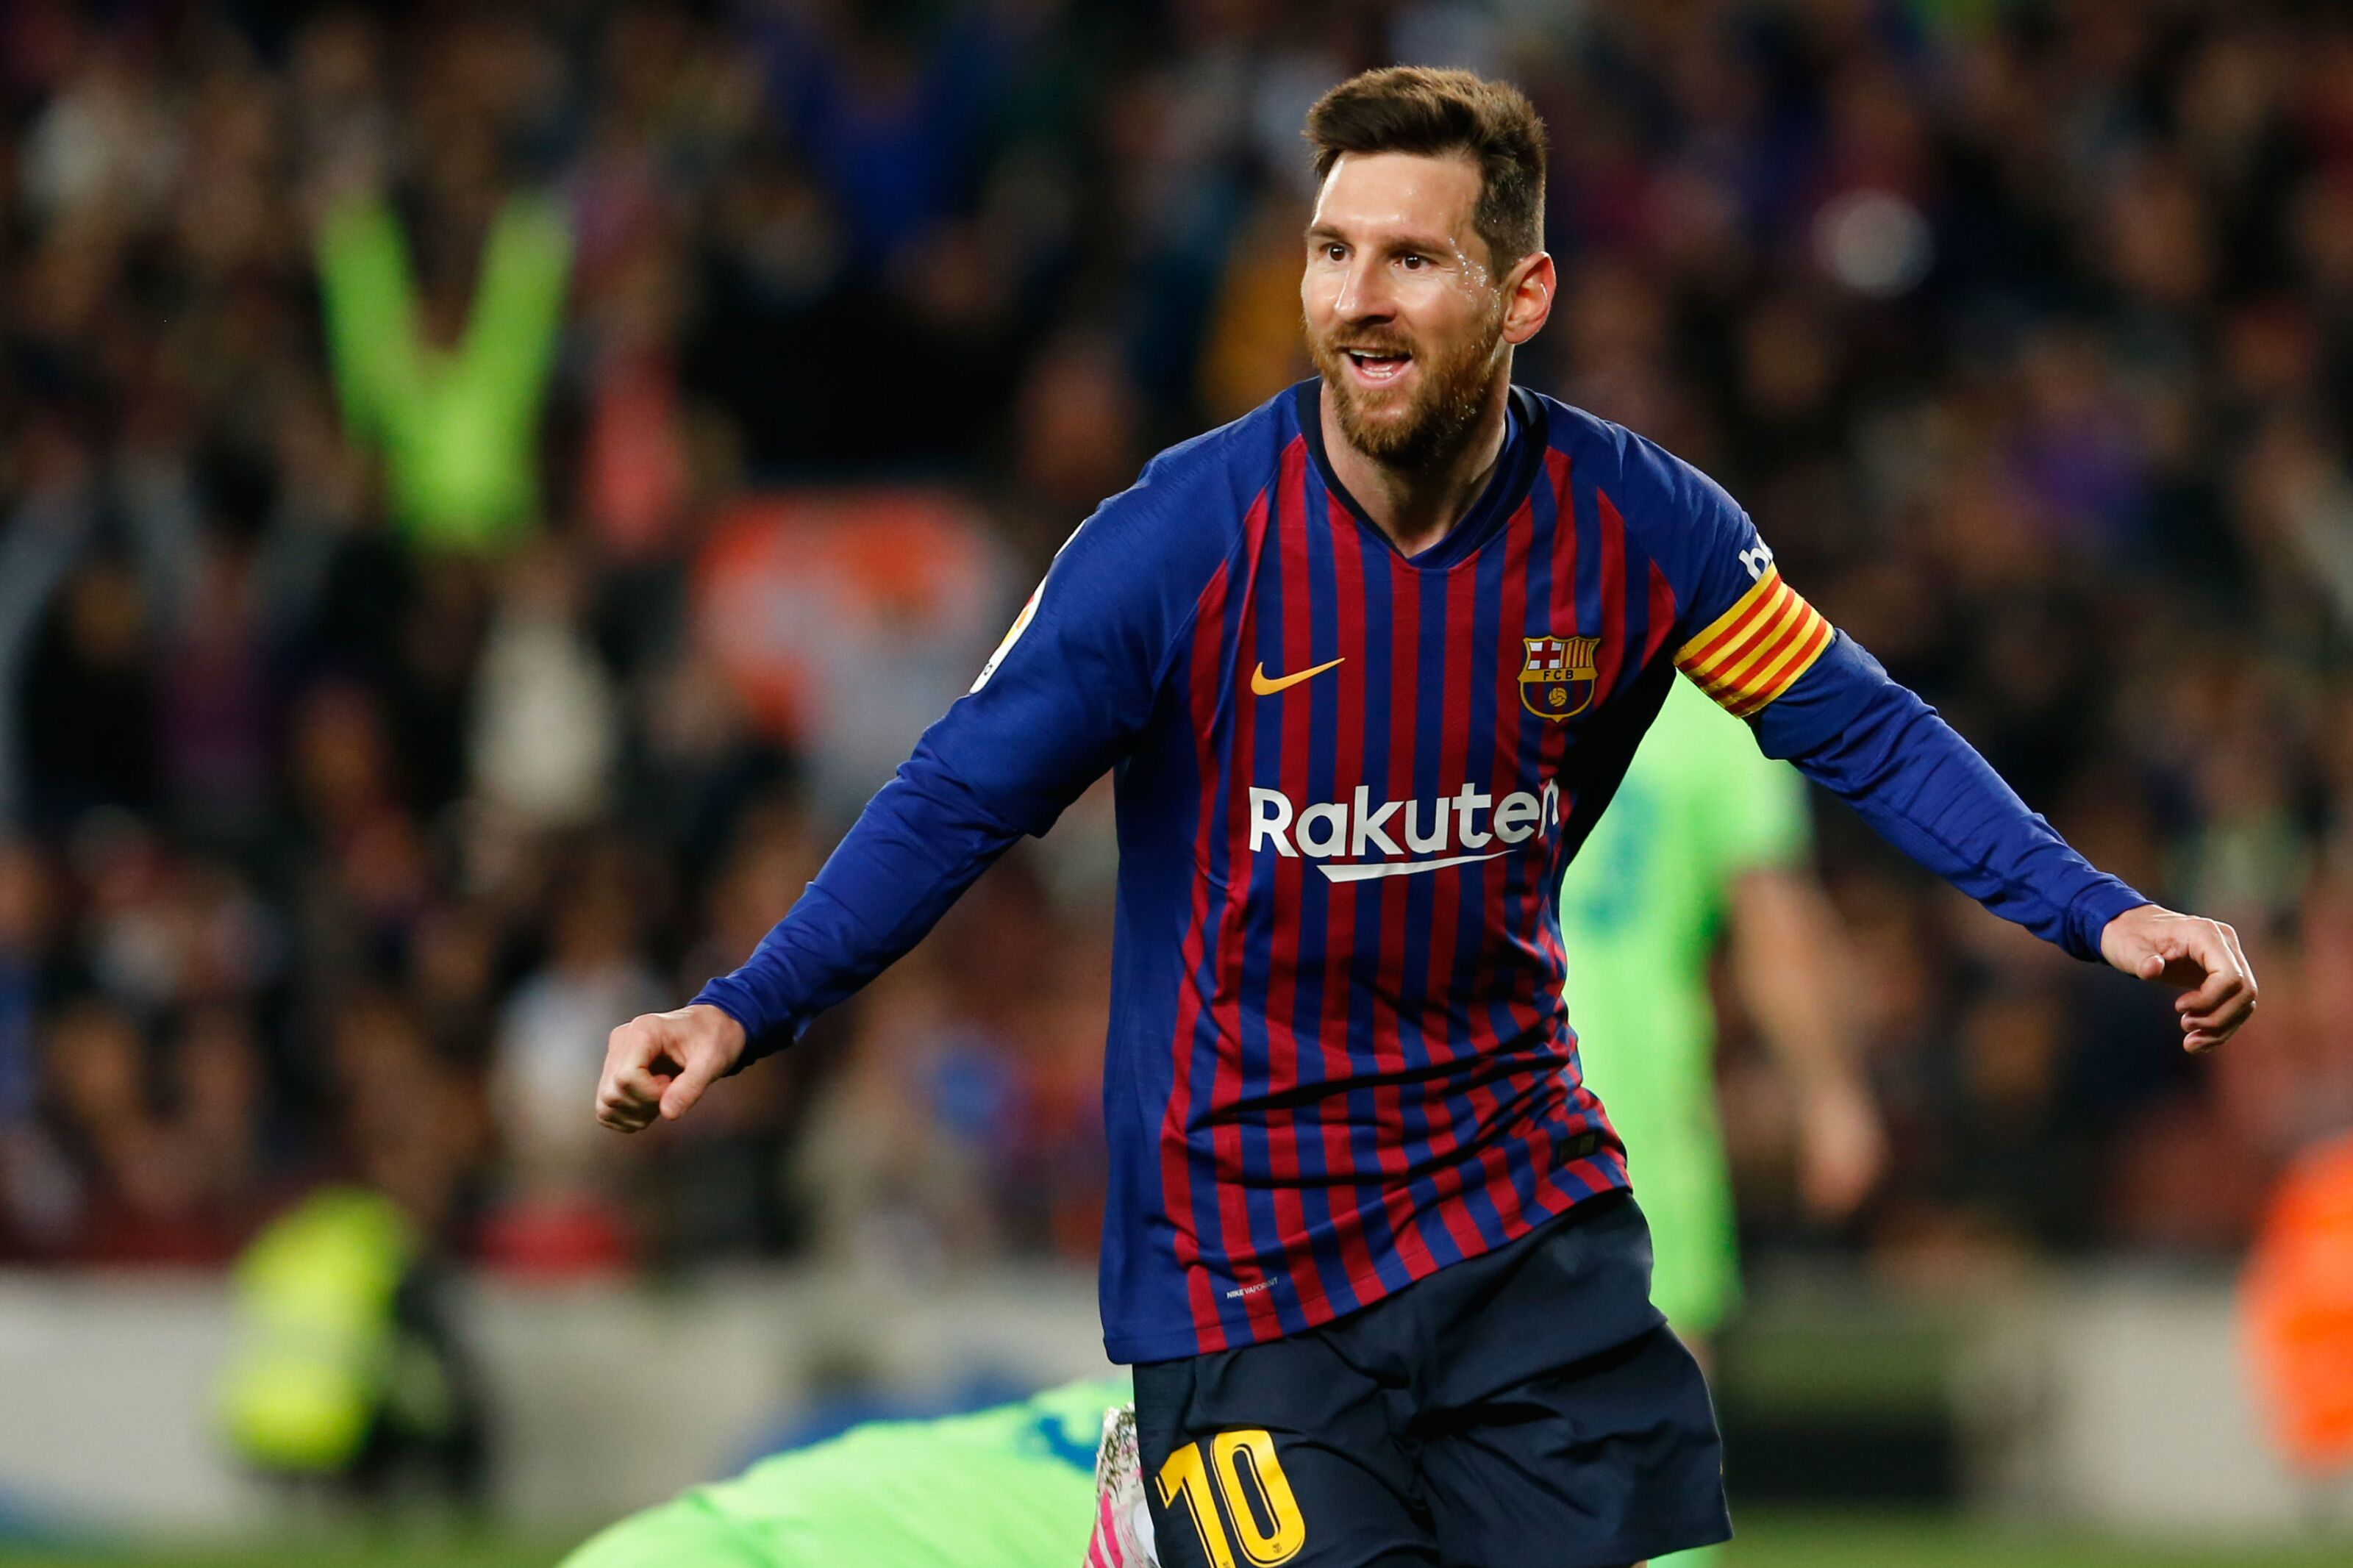 ea79dac06 Barcelona and Lionel Messi make a smart plan to block Real Madrid from  signing star player